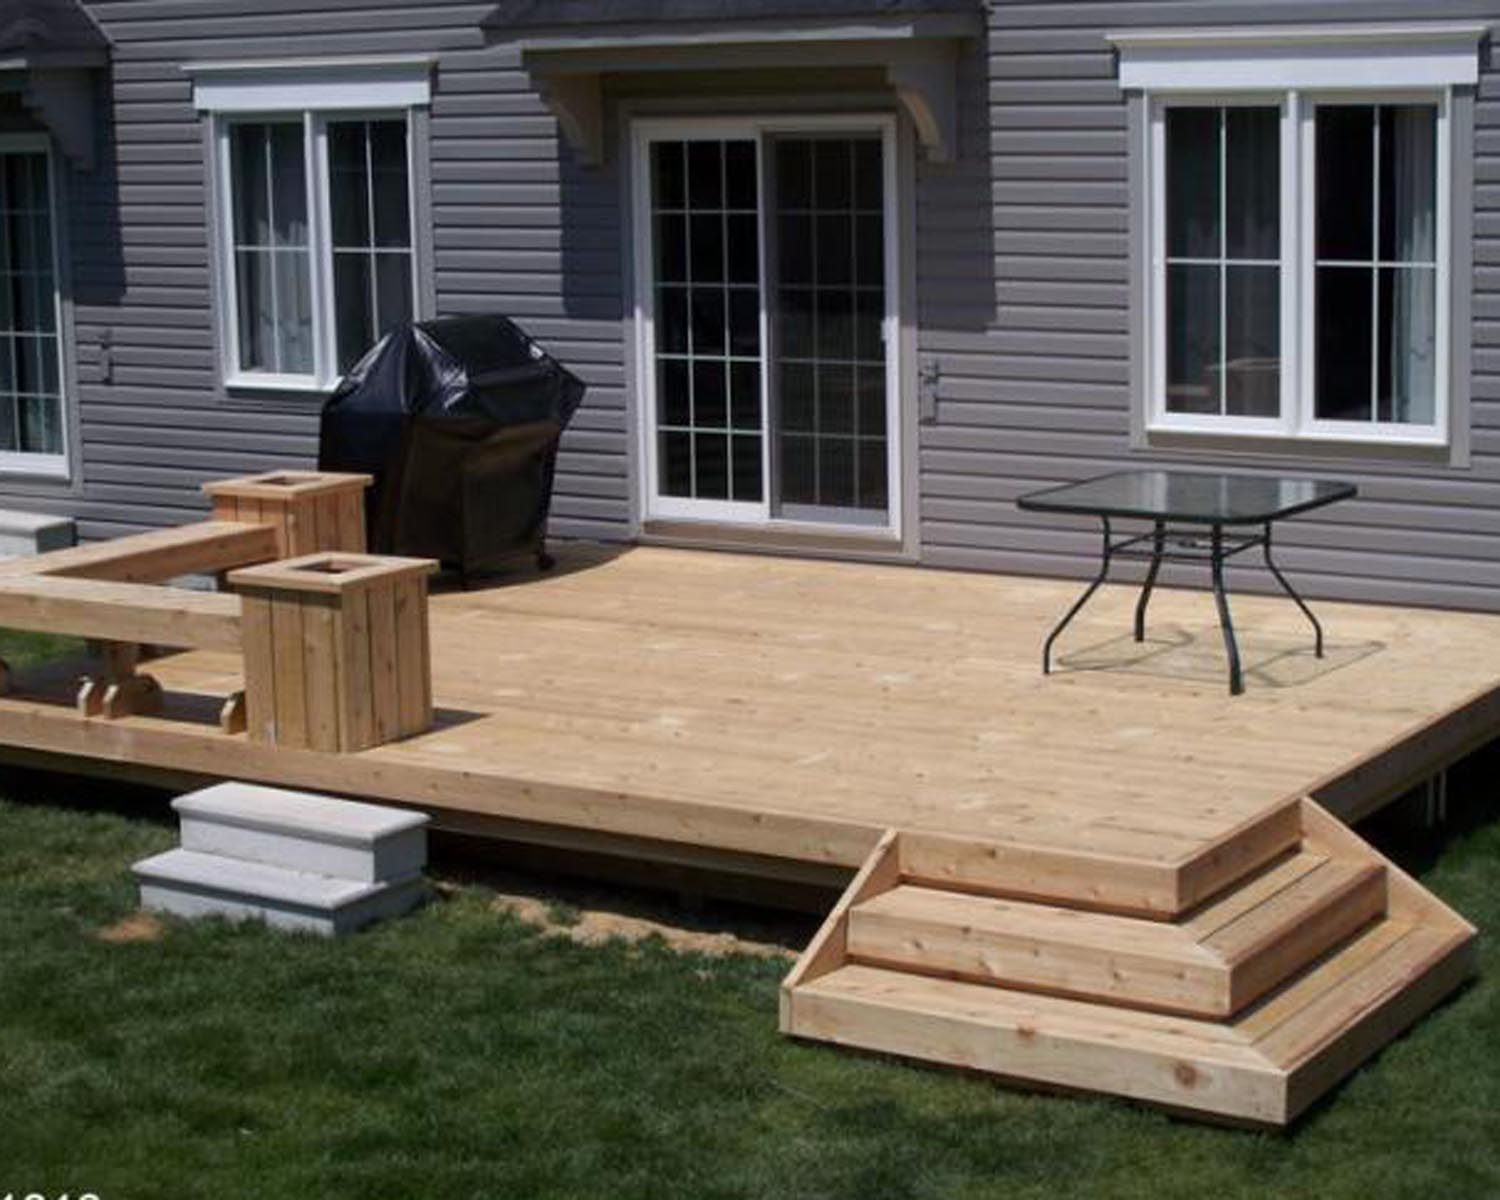 Ideas For Deck Designs landscaping ideas for deck gardens hgtv Deck Ideas Be More When Deck Building Simple But Functional Designs Can